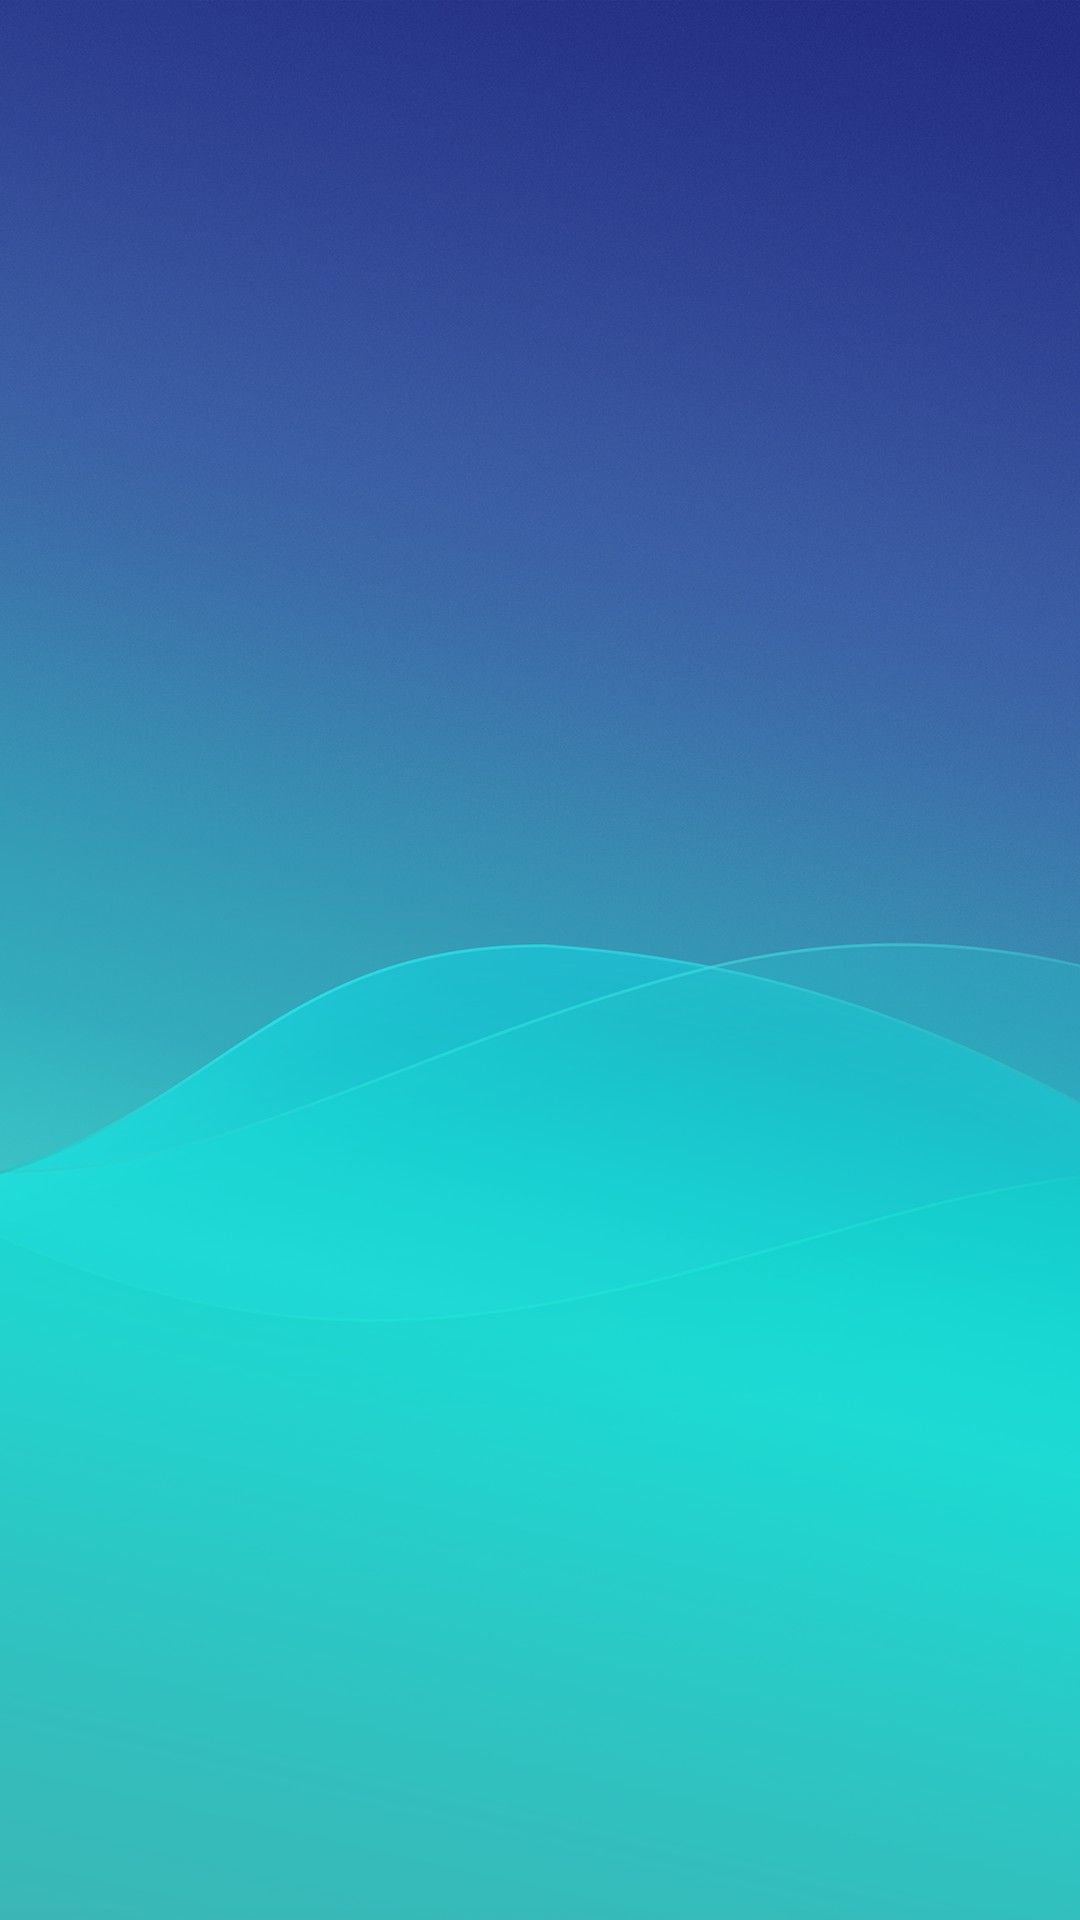 List of Cool Blue Wallpaper for iPhone XR Today